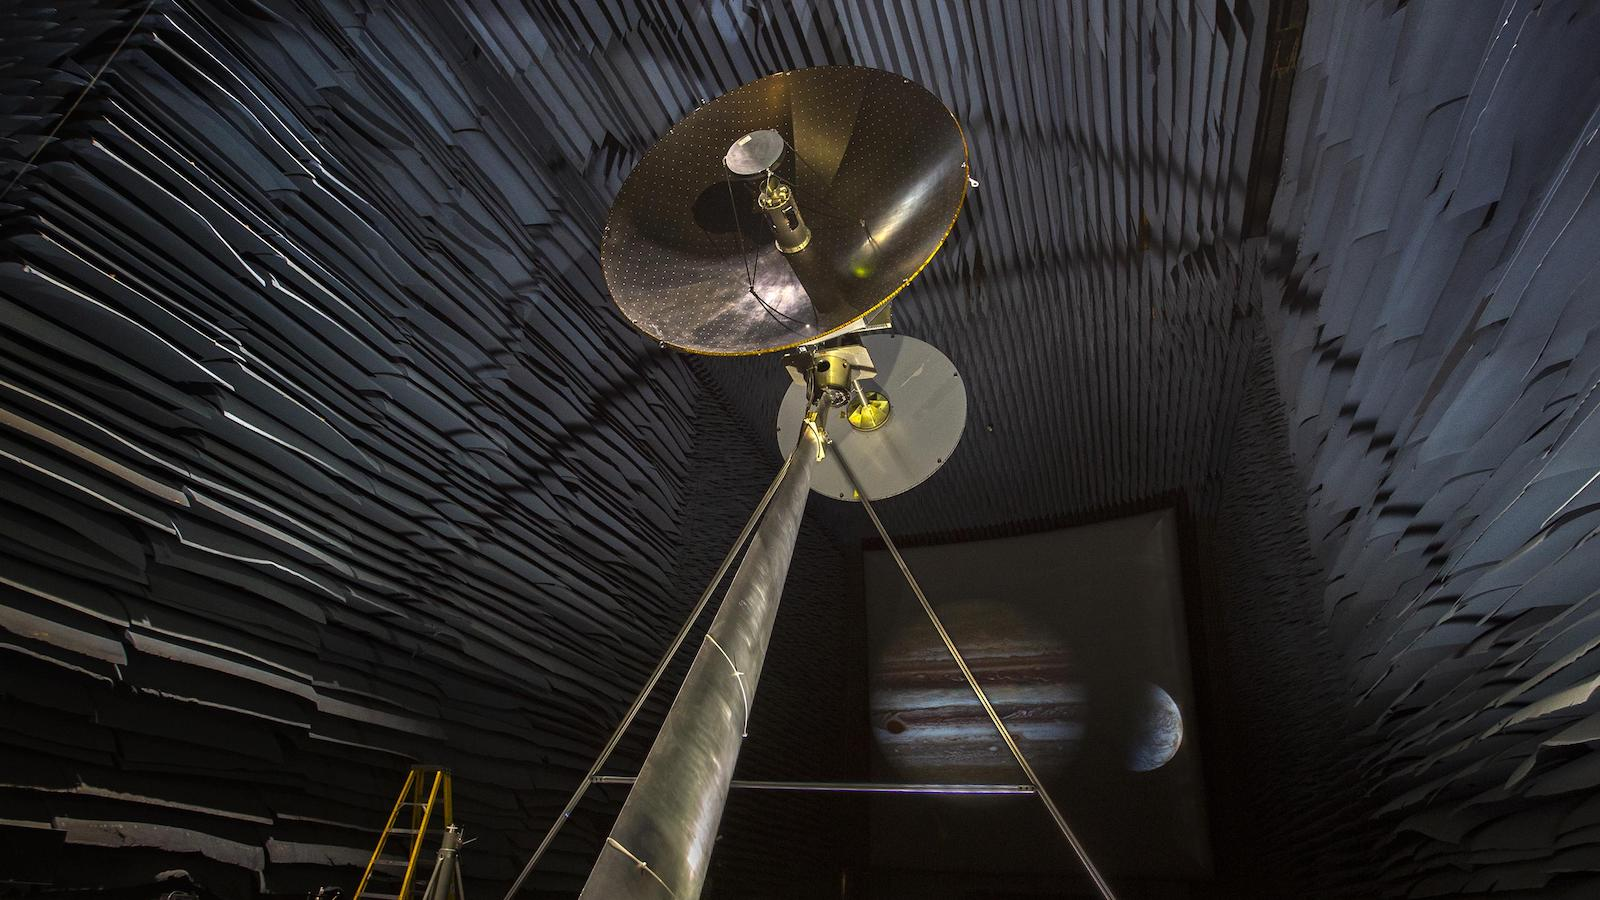 slide 2 - antenna dish in large chamber